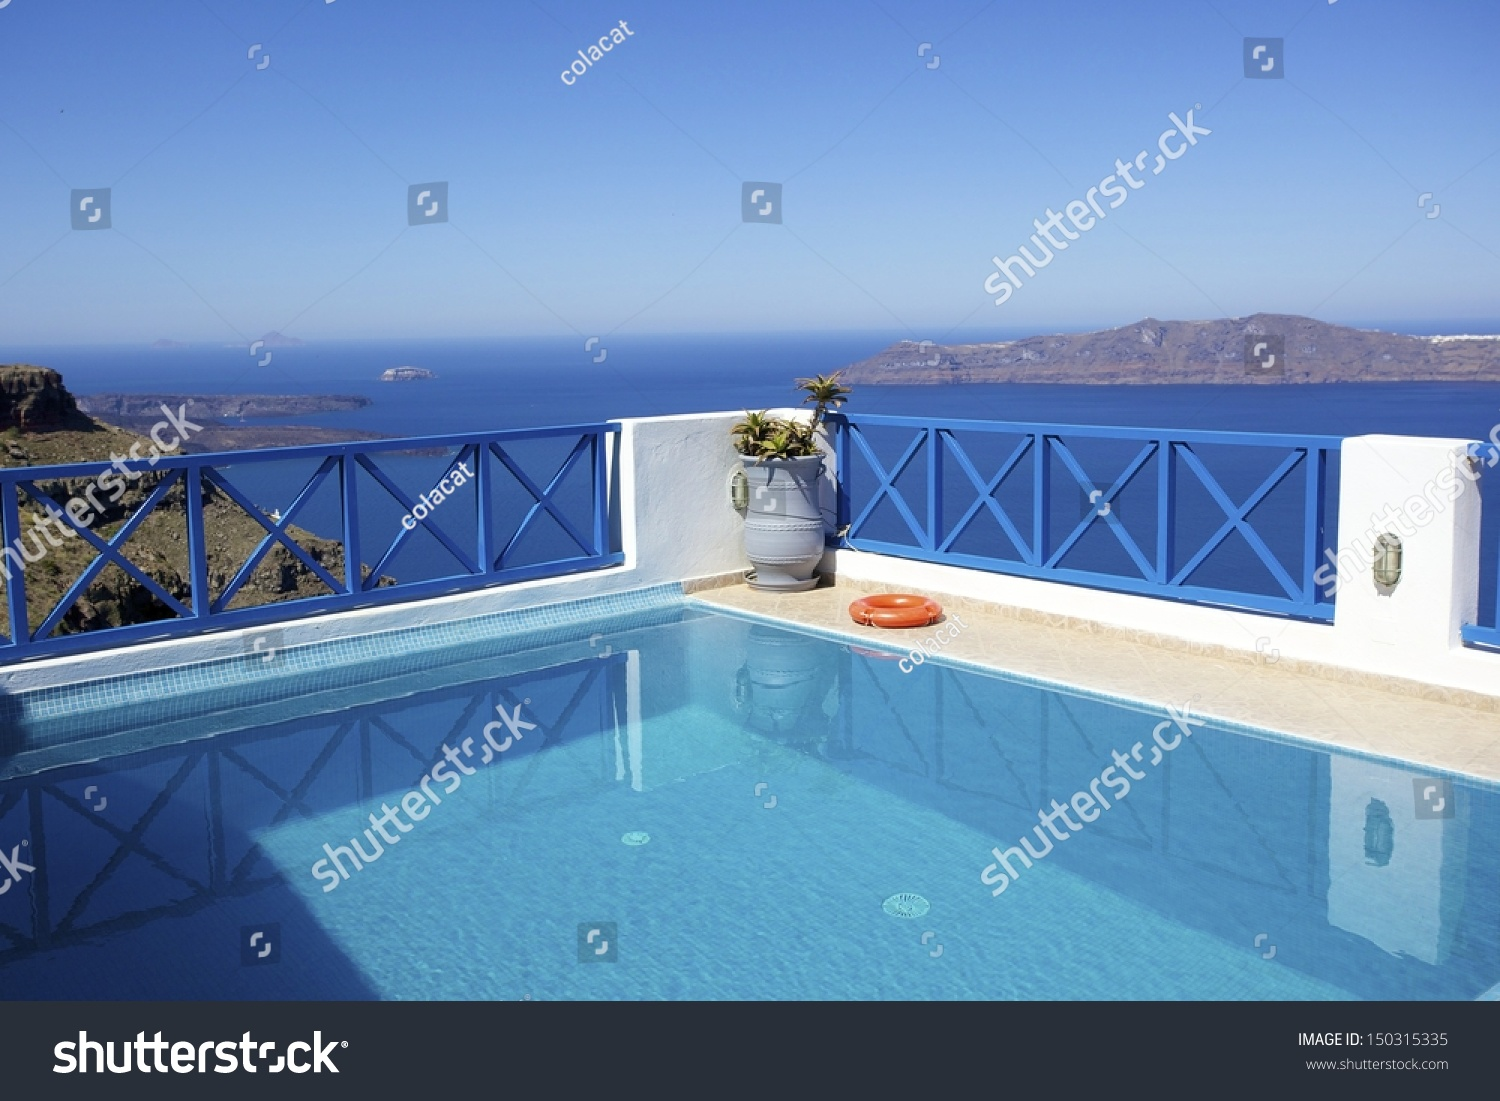 Swimming Pool Built On Cliff Overlooking Stock Photo 150315335 Shutterstock